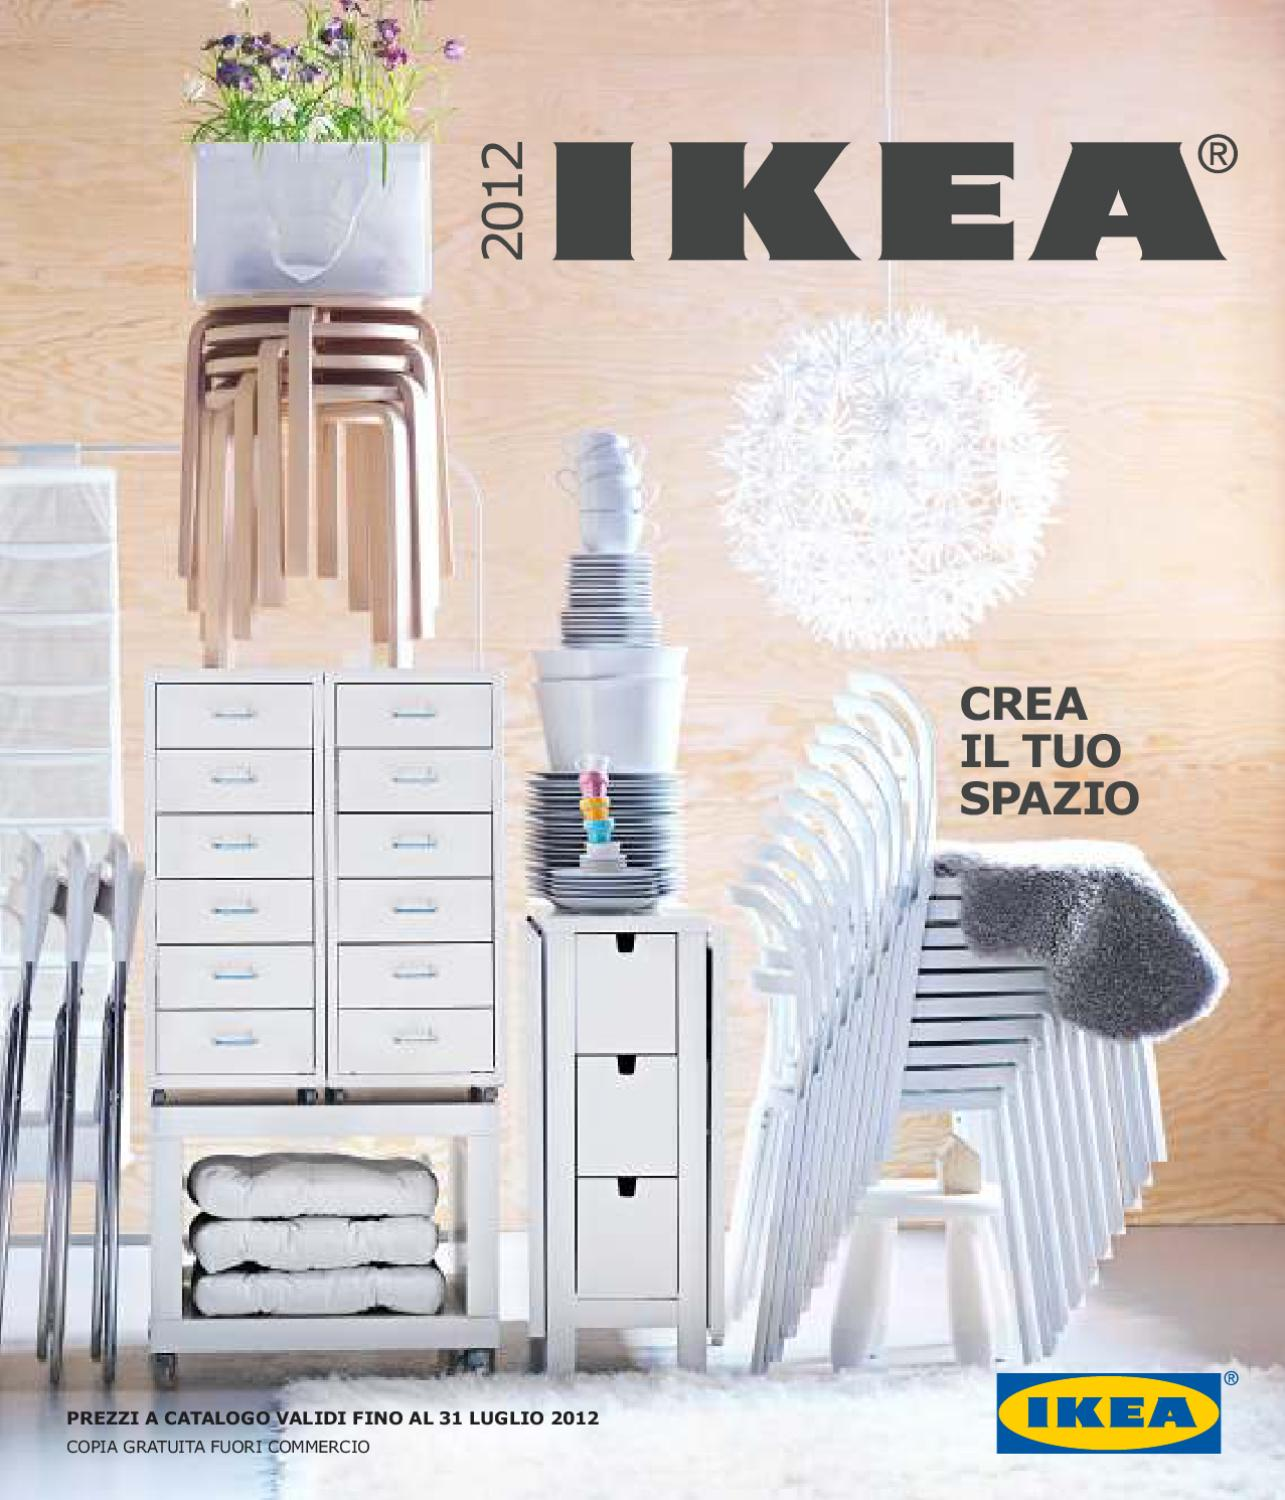 Catalogo ikea italia 2012 by issuu for Asciugamani ikea